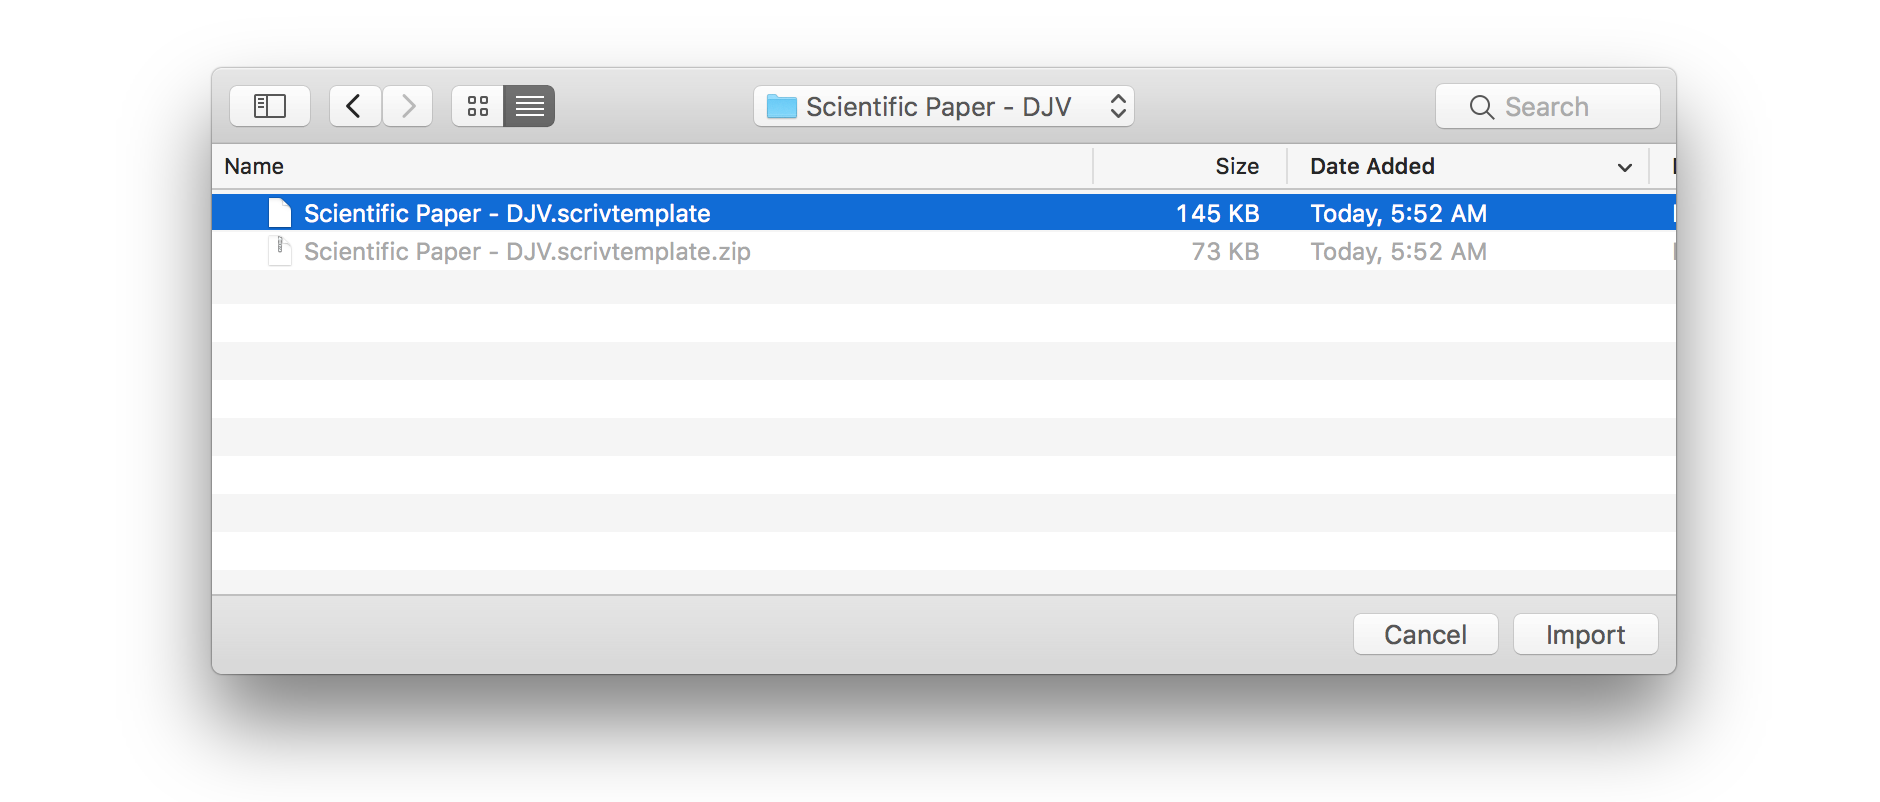 After Importing Your Scrivener Template File The Will Now Be Available On Project Templates Screen If You Are My For